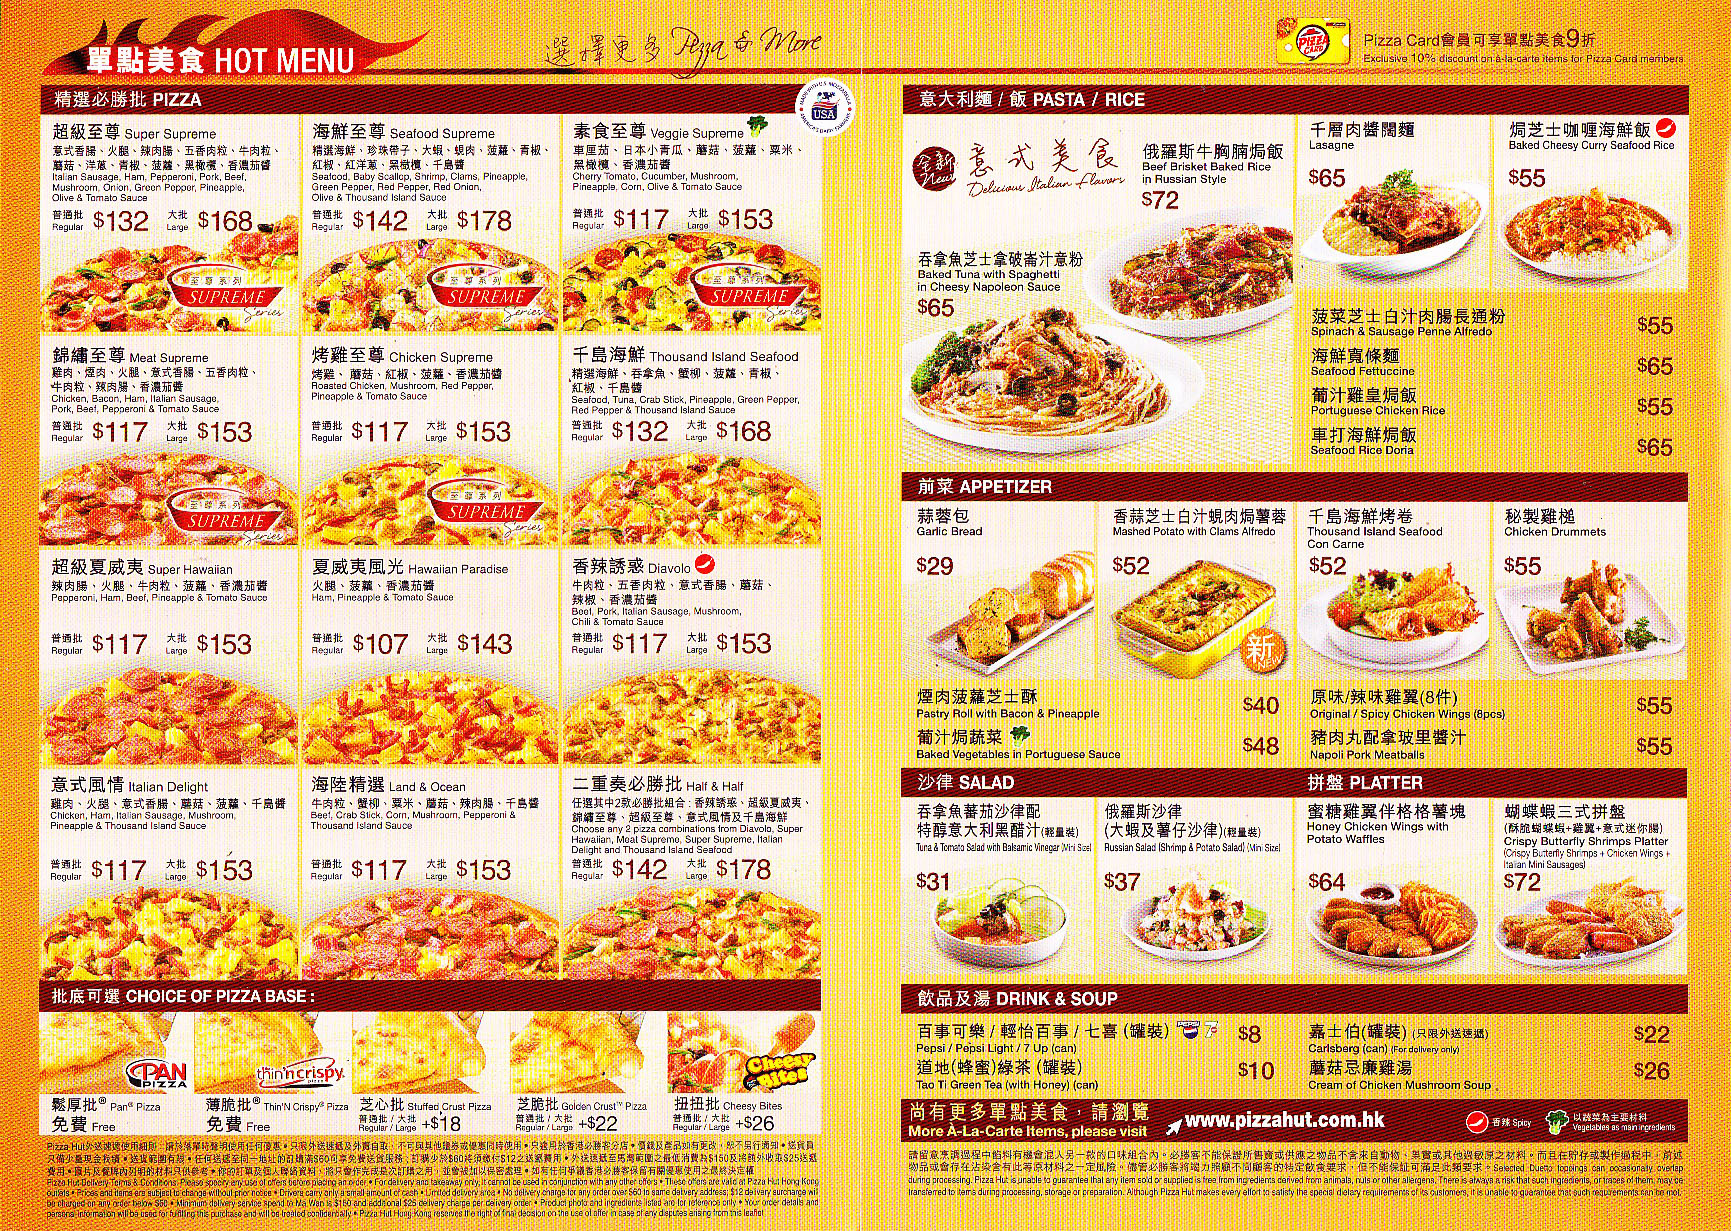 PIZZA HUT DELIVERY MENU PRICES SINGAPORE - social networking